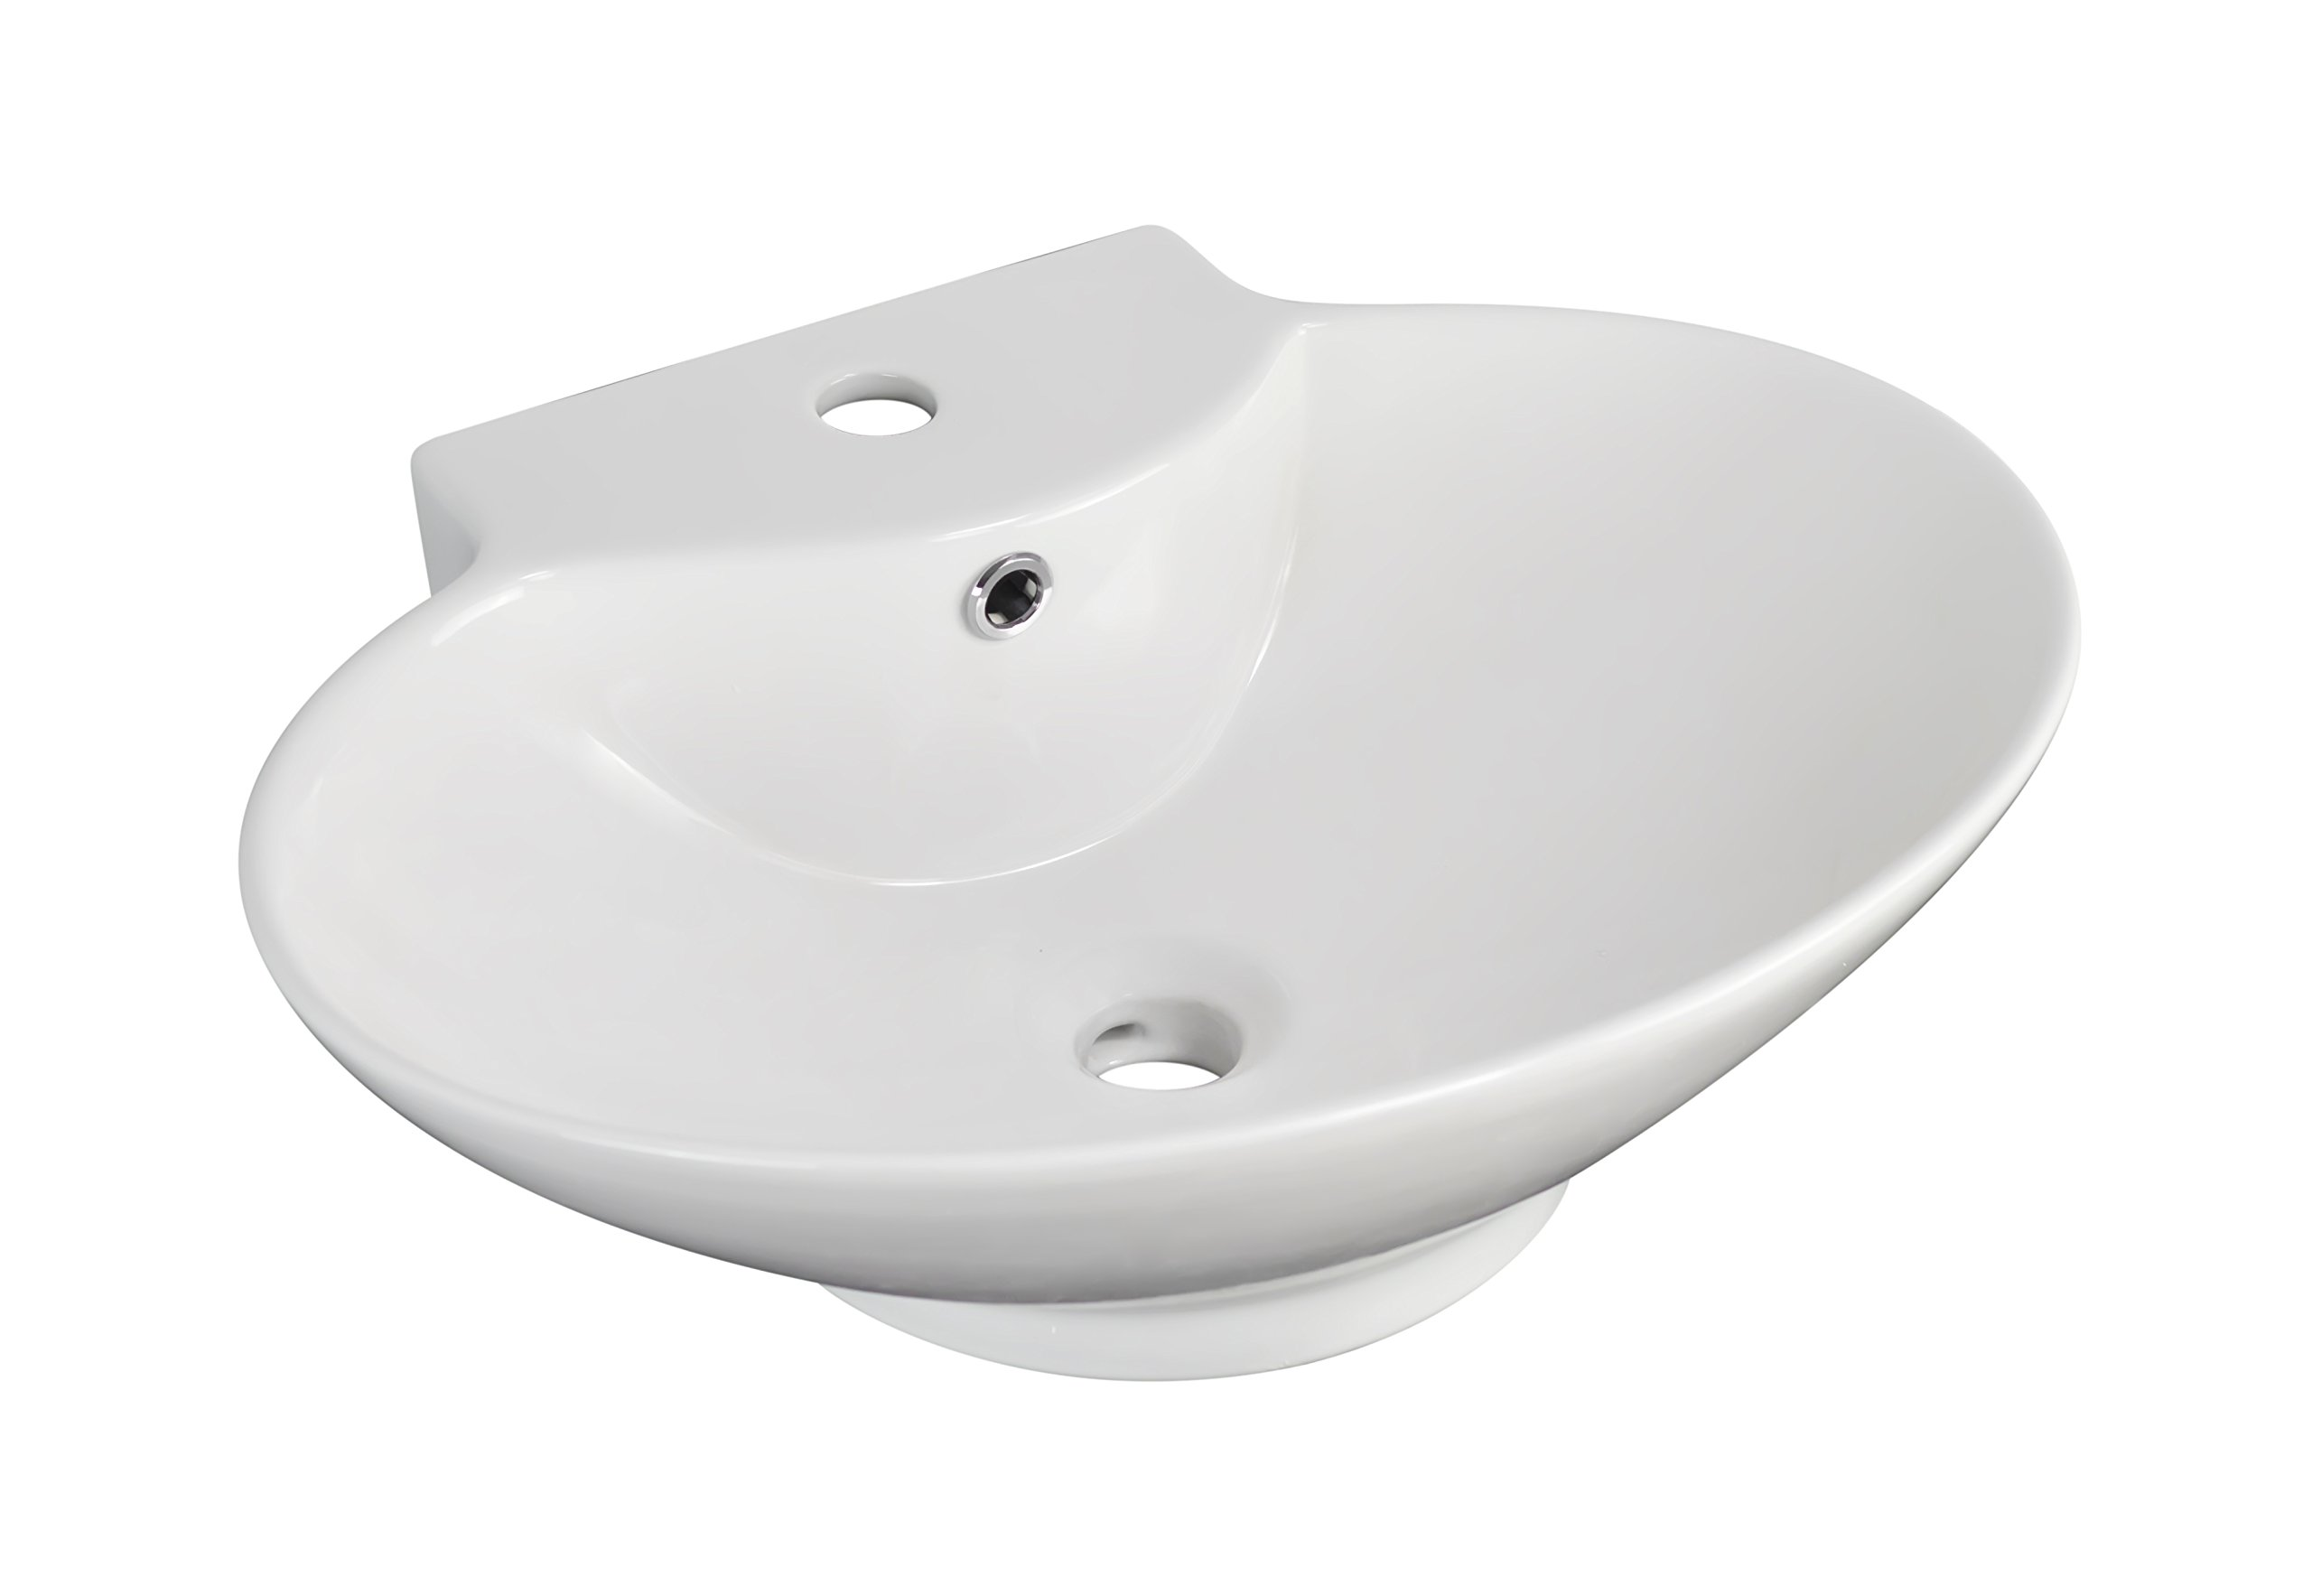 American Imaginations 703   Wall Mount Oval White Ceramic Vessel for Single Hole Faucet Installation